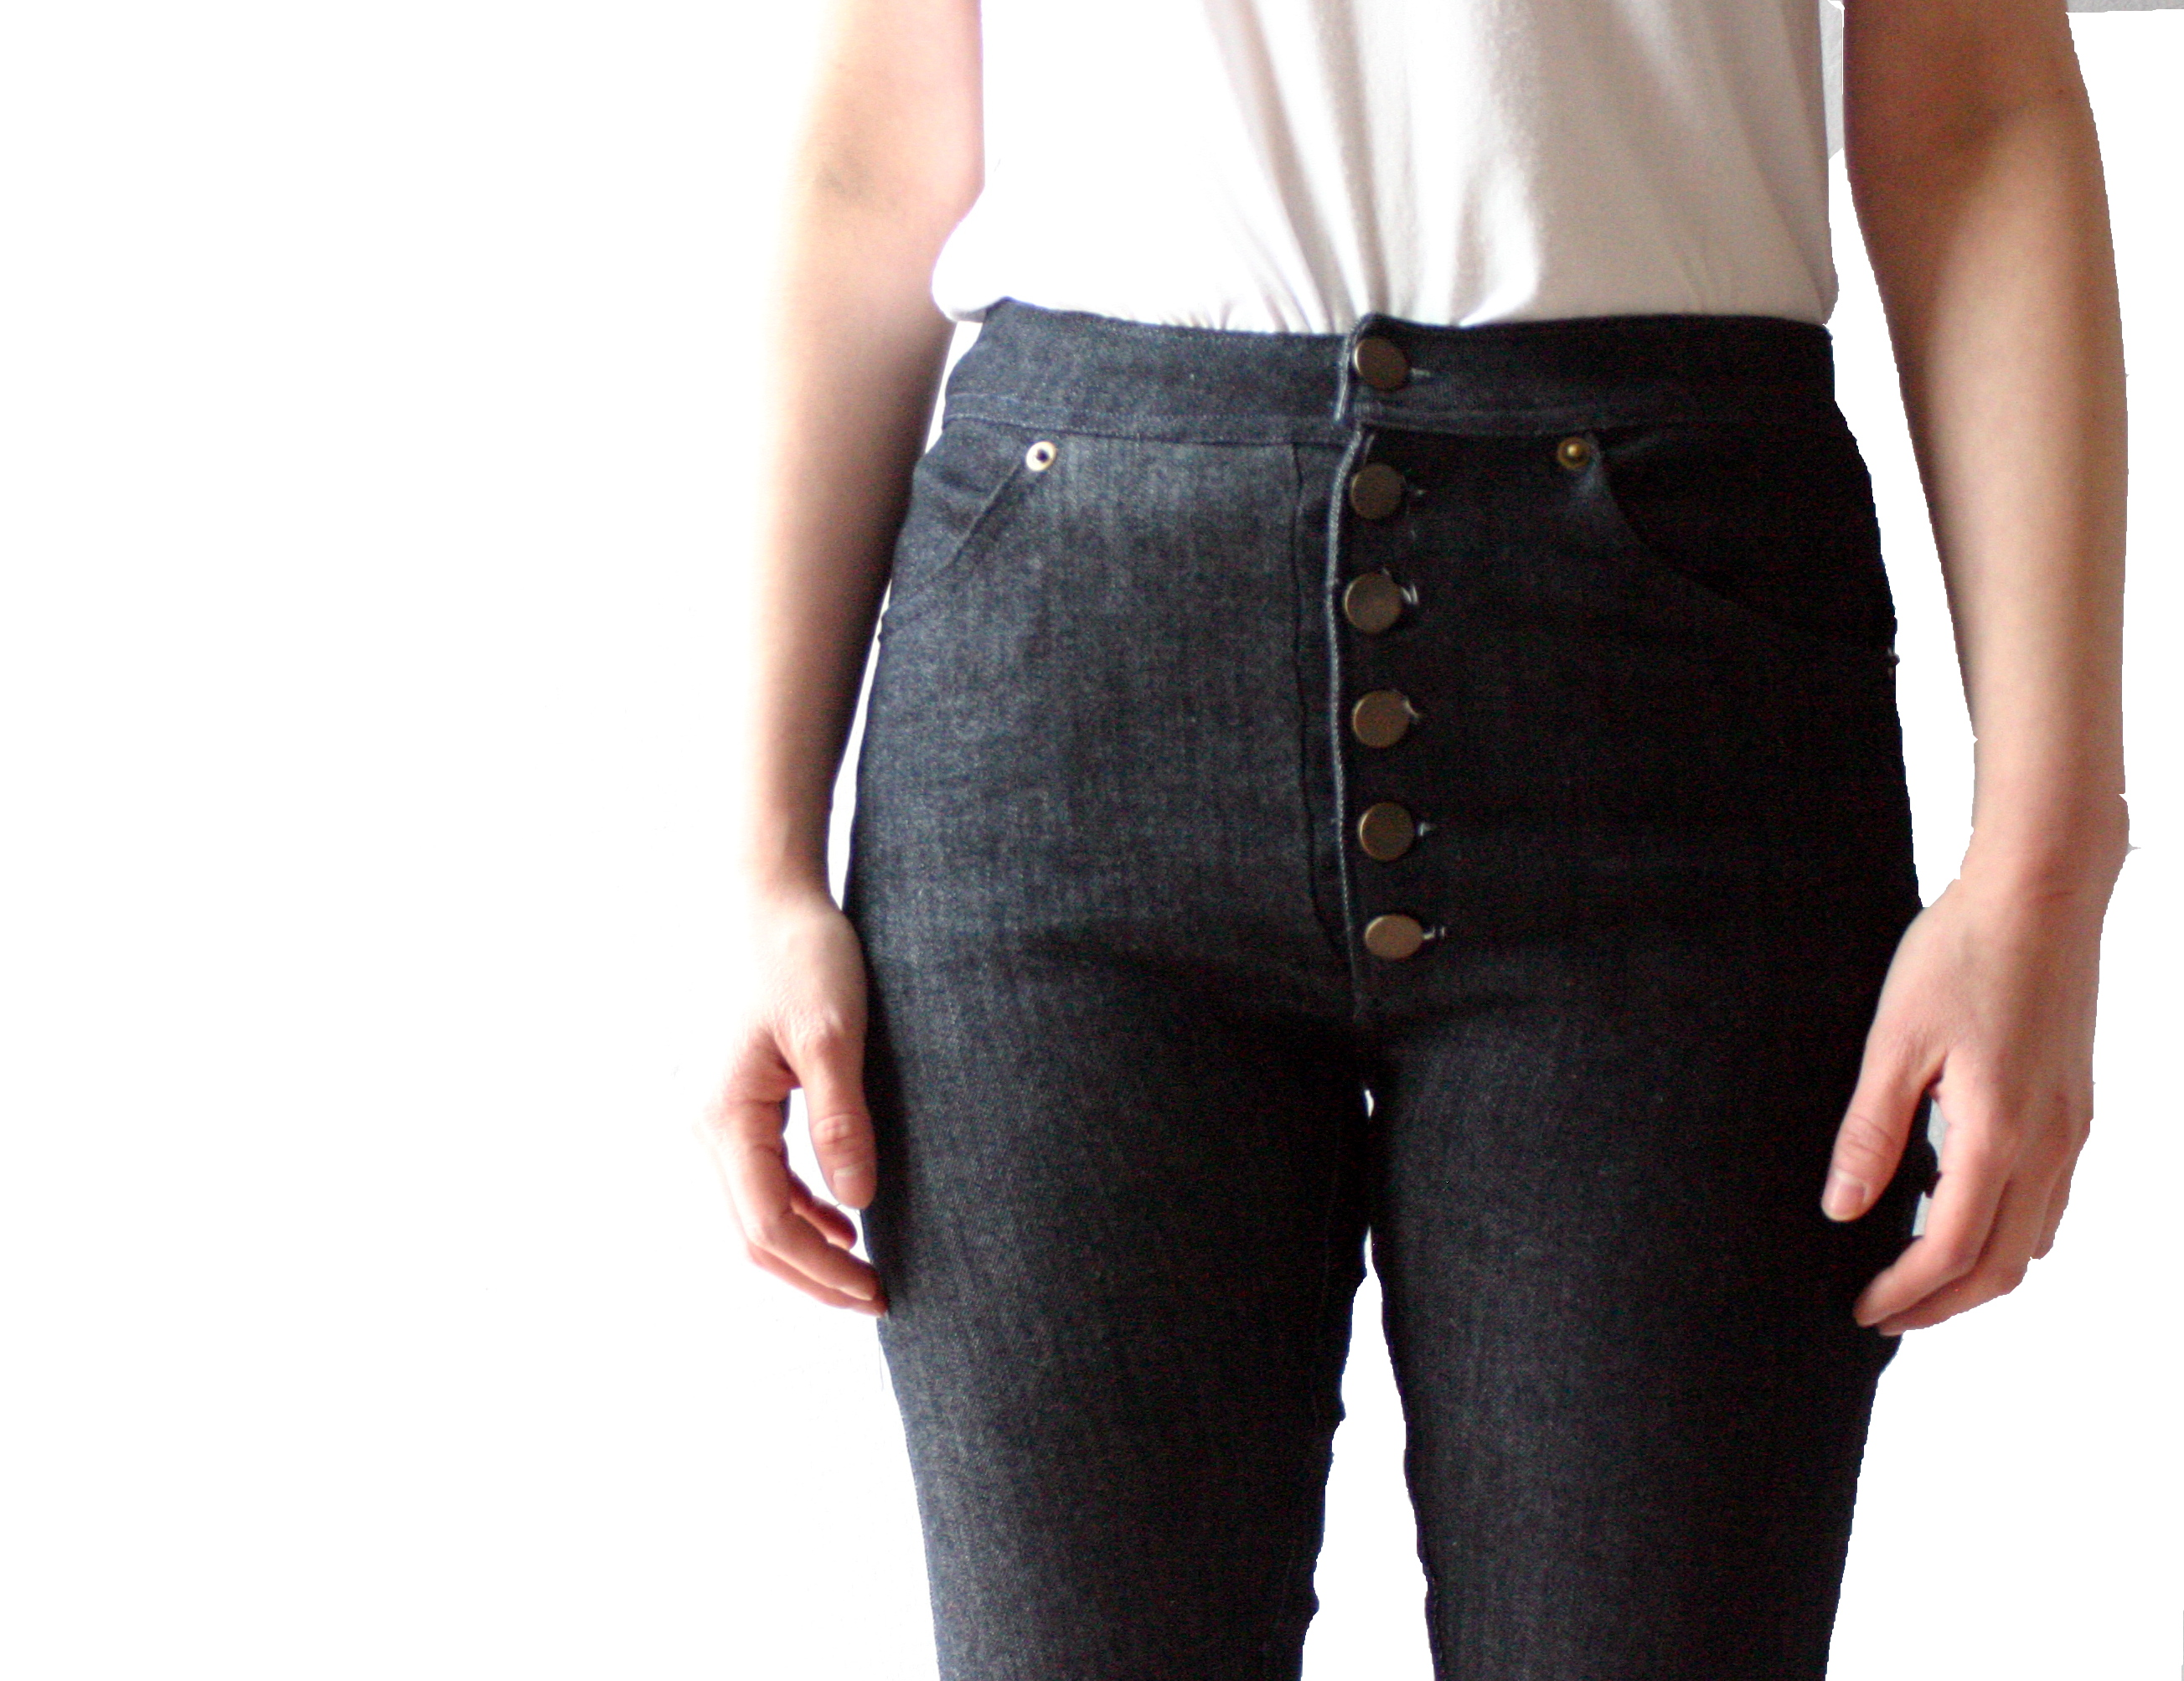 High-waisted jeans with tack button fly u2013 Sewing Projects | BurdaStyle.com